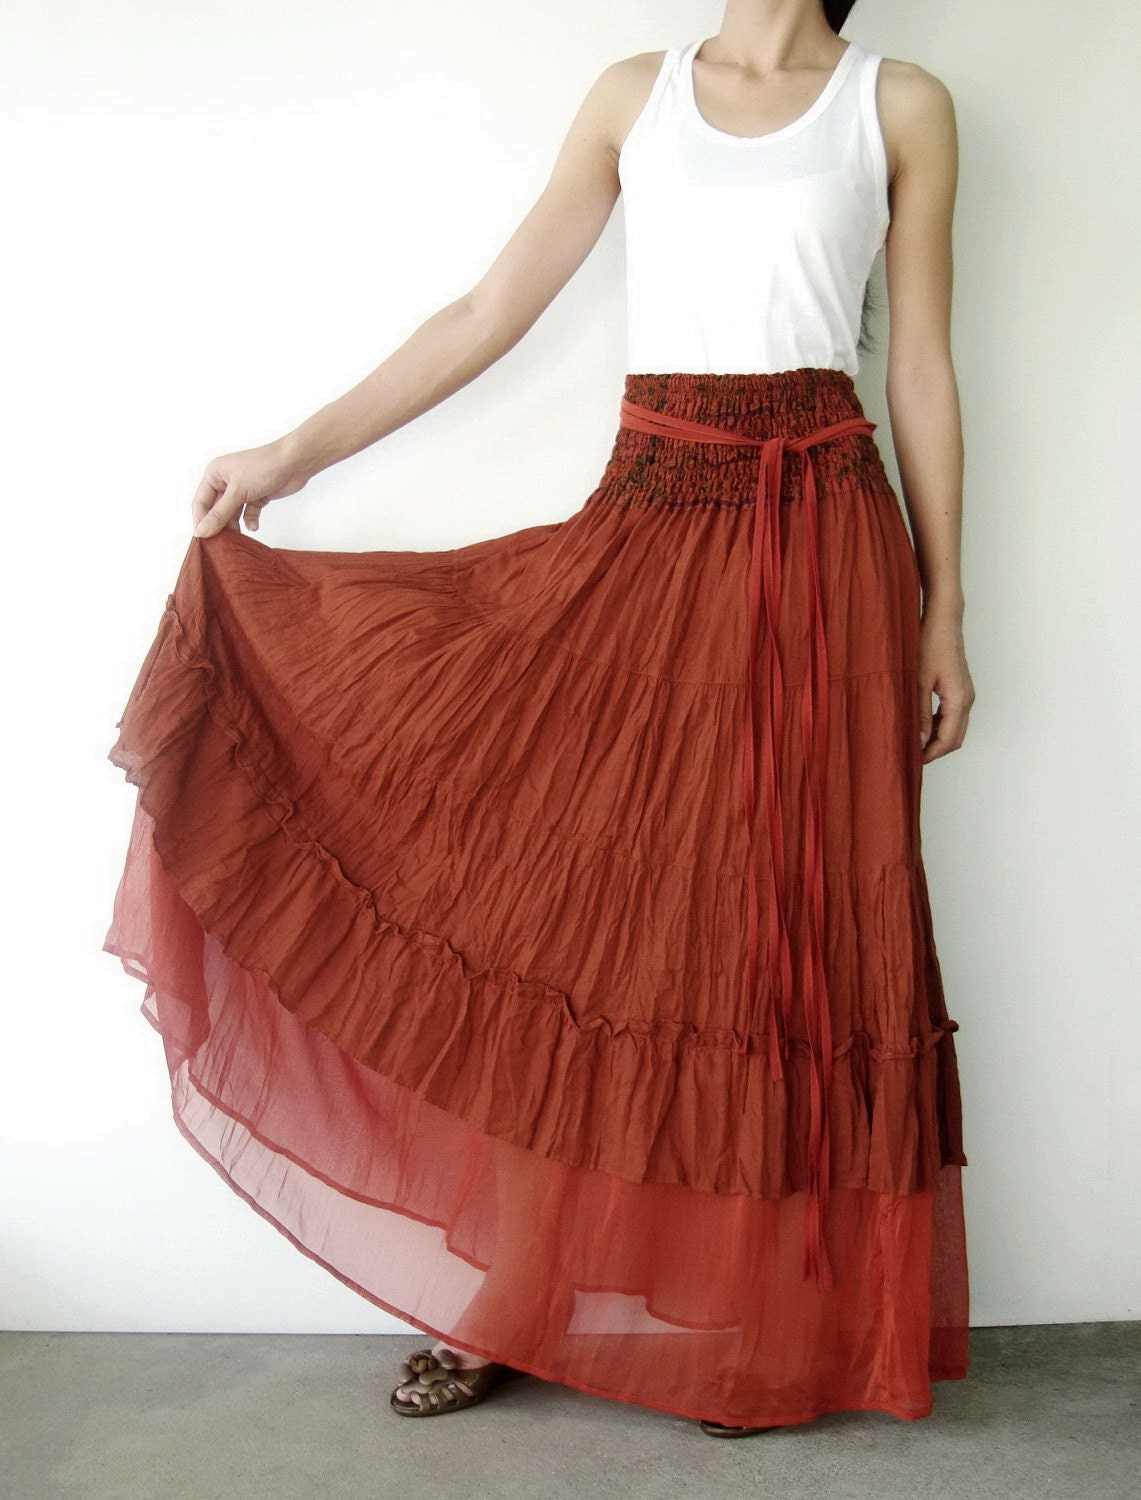 NO.36 Rust Cotton Tiered Peasant Skirt Long Maxi Skirt